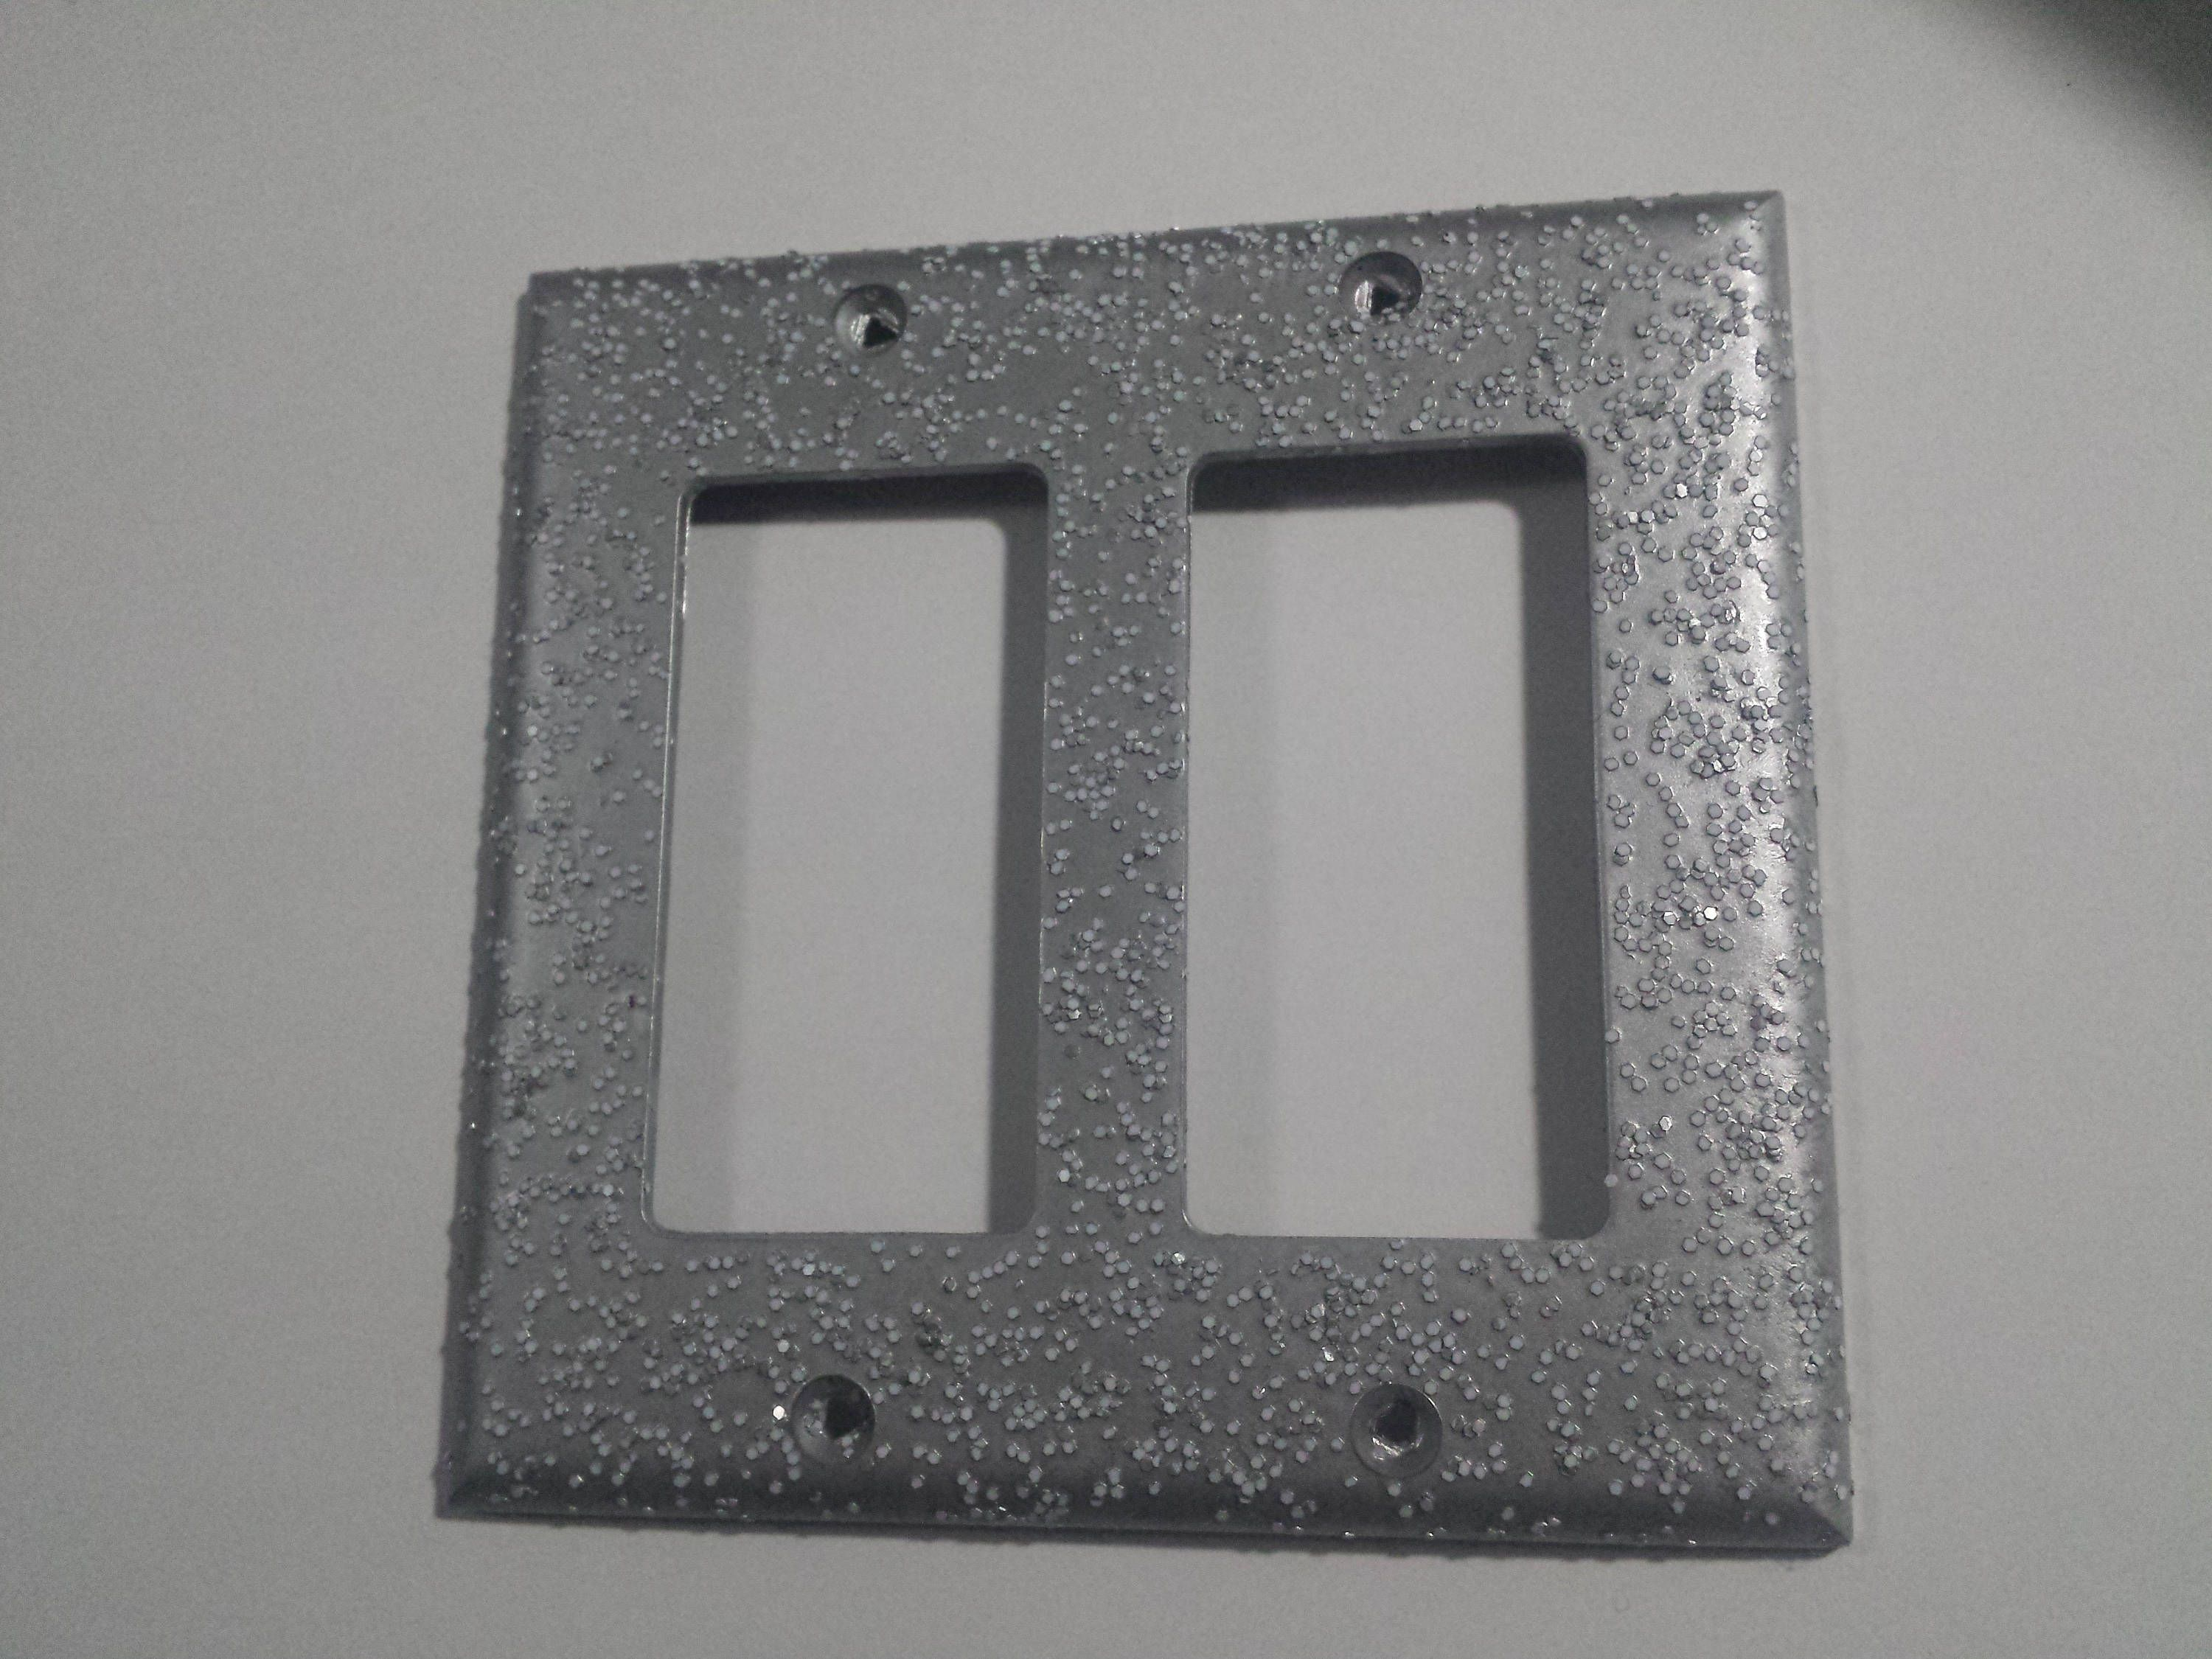 Silver Alunimum Opaque White Glitter Decorative Bling Light Switch Plates Out Light Switch Plates Plates On Wall White Glitter